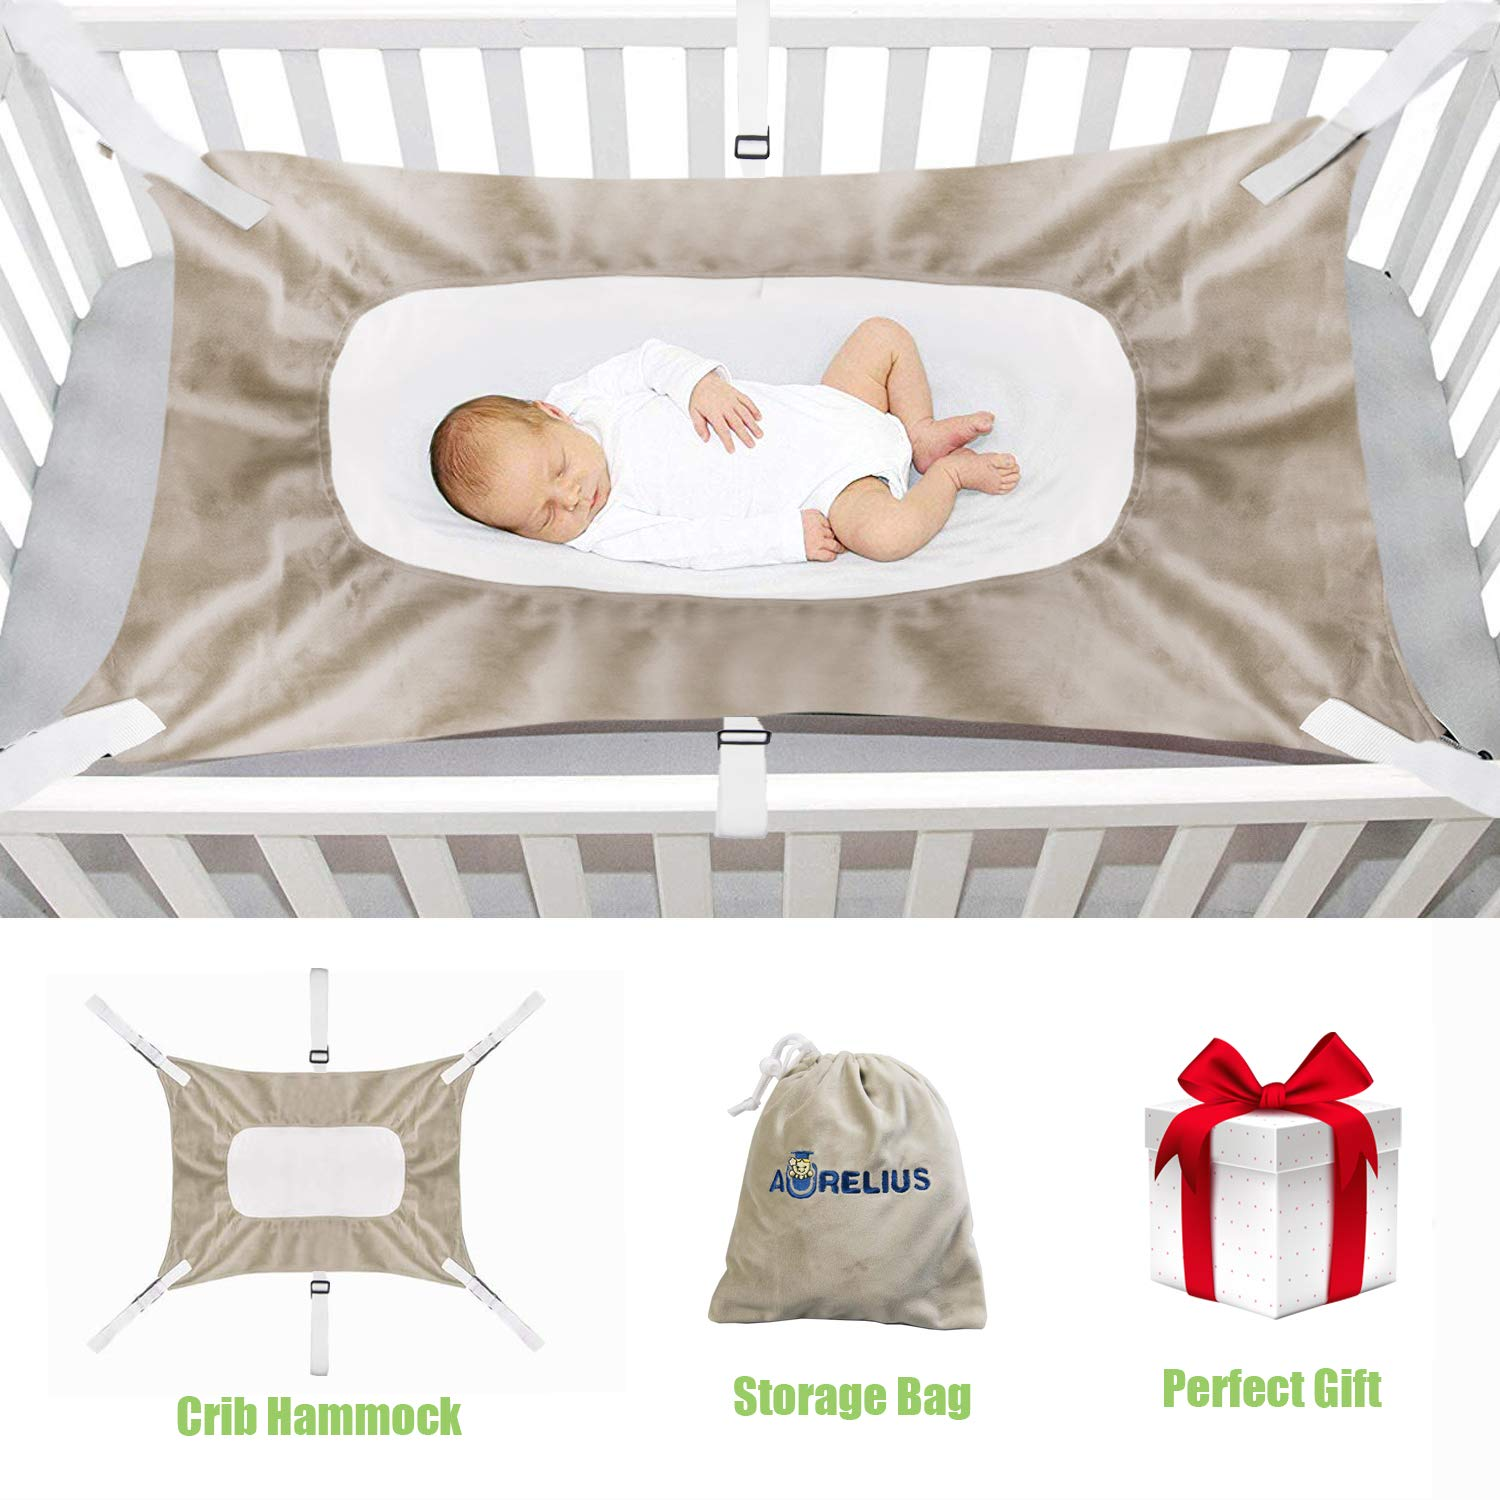 Aurelius Baby Hammock for Crib,Mimics Womb,Bassinet Hammock Bed,Comfortable Three-Layer Breathable Net,Newborn Infant Nursery Travel Bed with Portable Gift Bag for Newborn Baby Shower Gift (Light Brown)